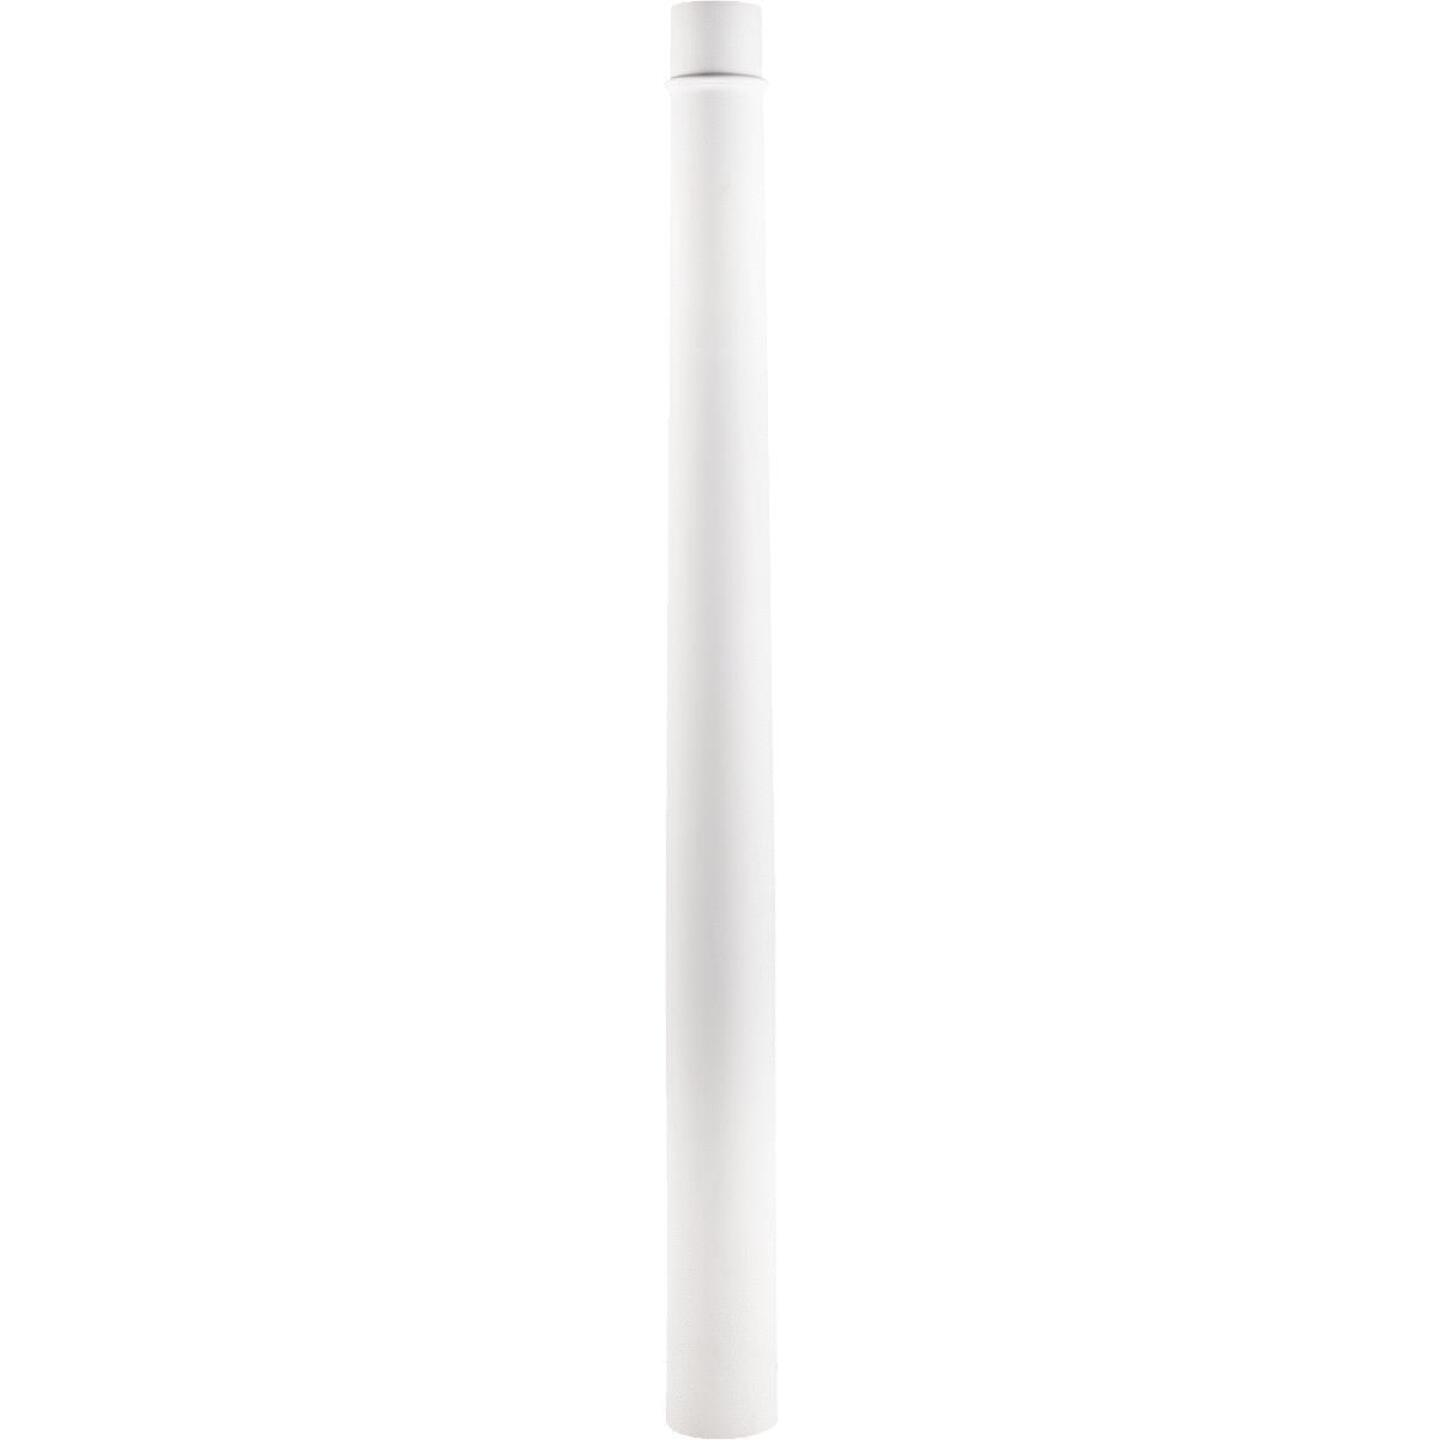 Crown Column 8 In. x 8 Ft. Unfinished Round Fiberglass Column Image 3